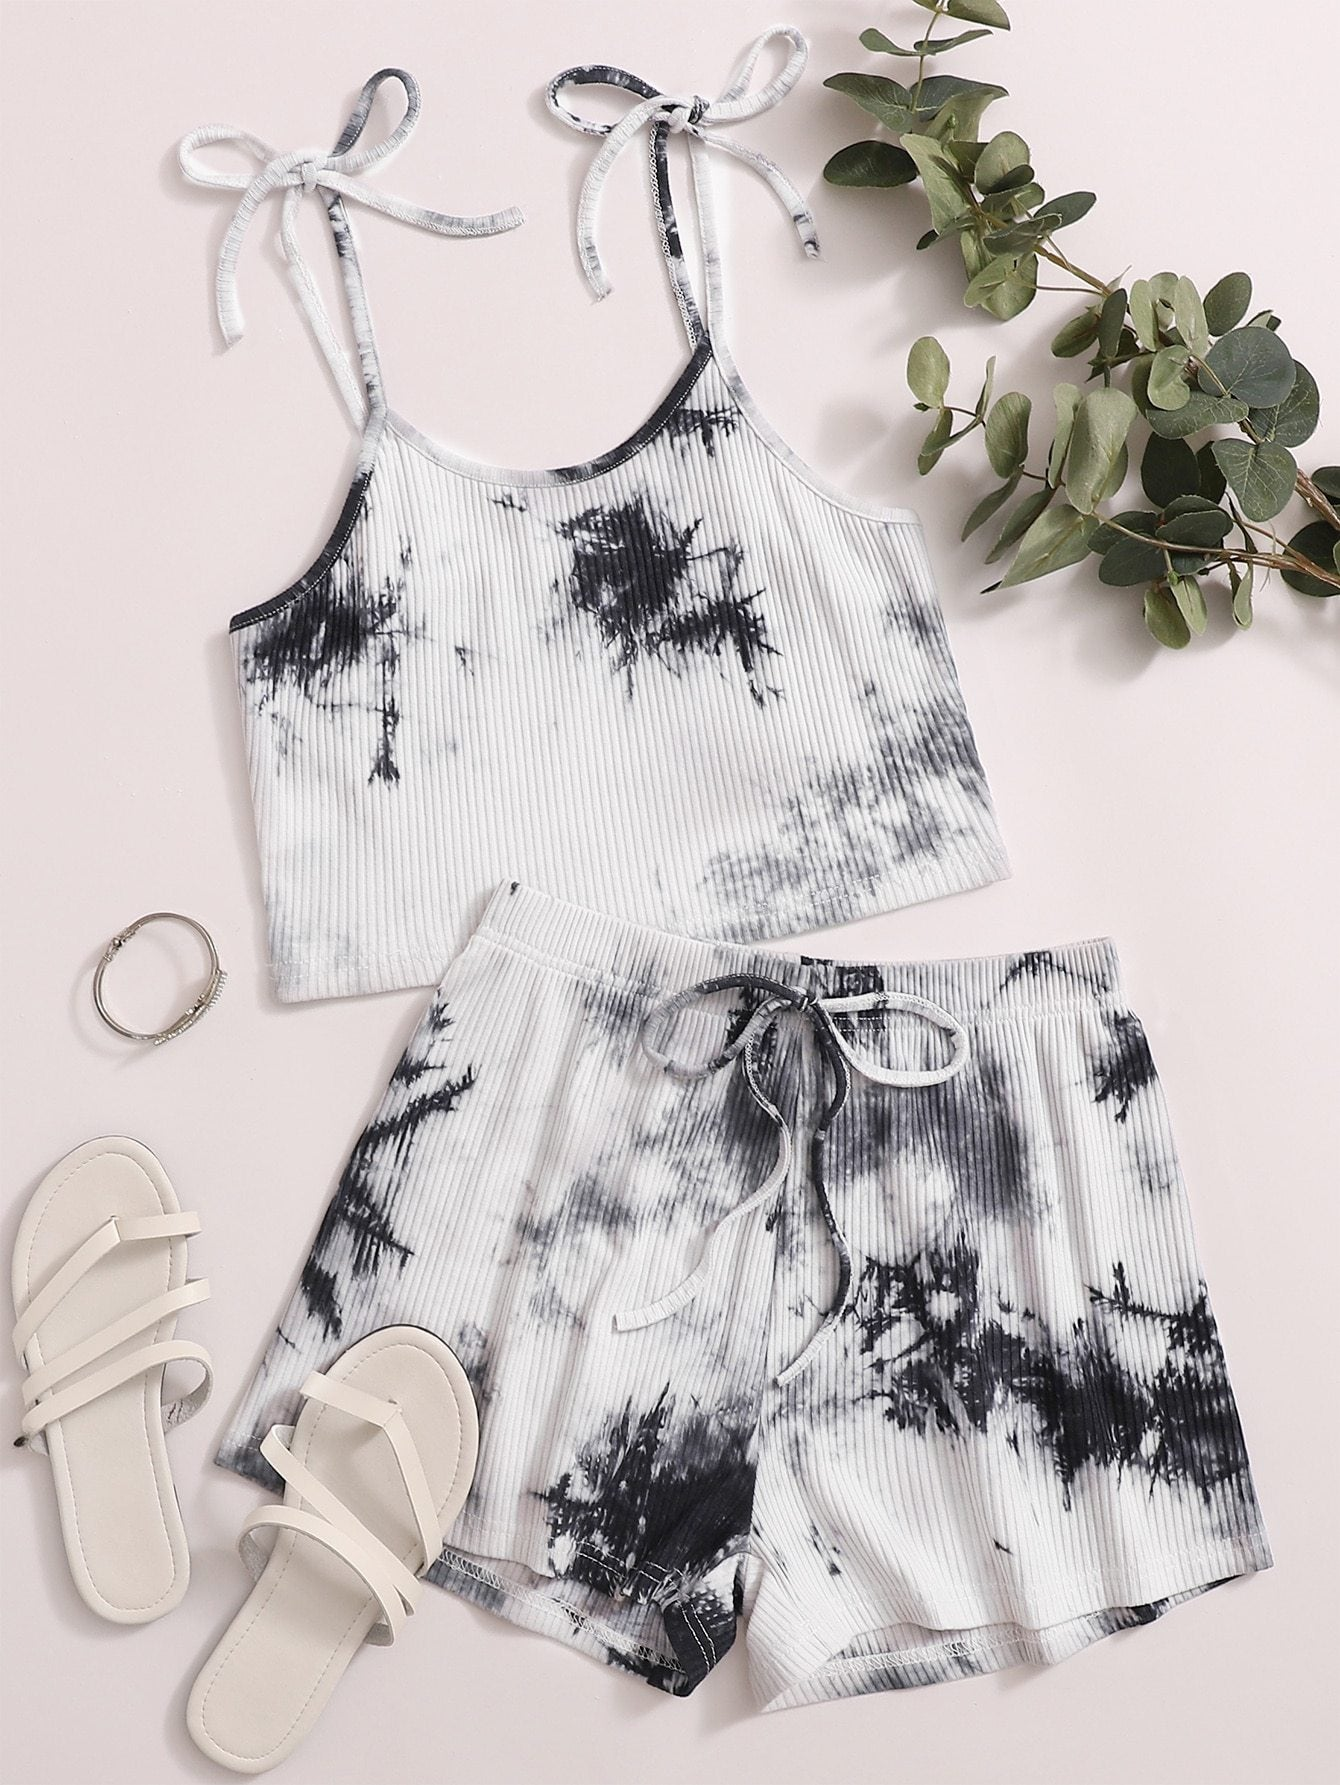 Tie Dye Rib-Knit Cami Top With Shorts - FLJ CORPORATIONS